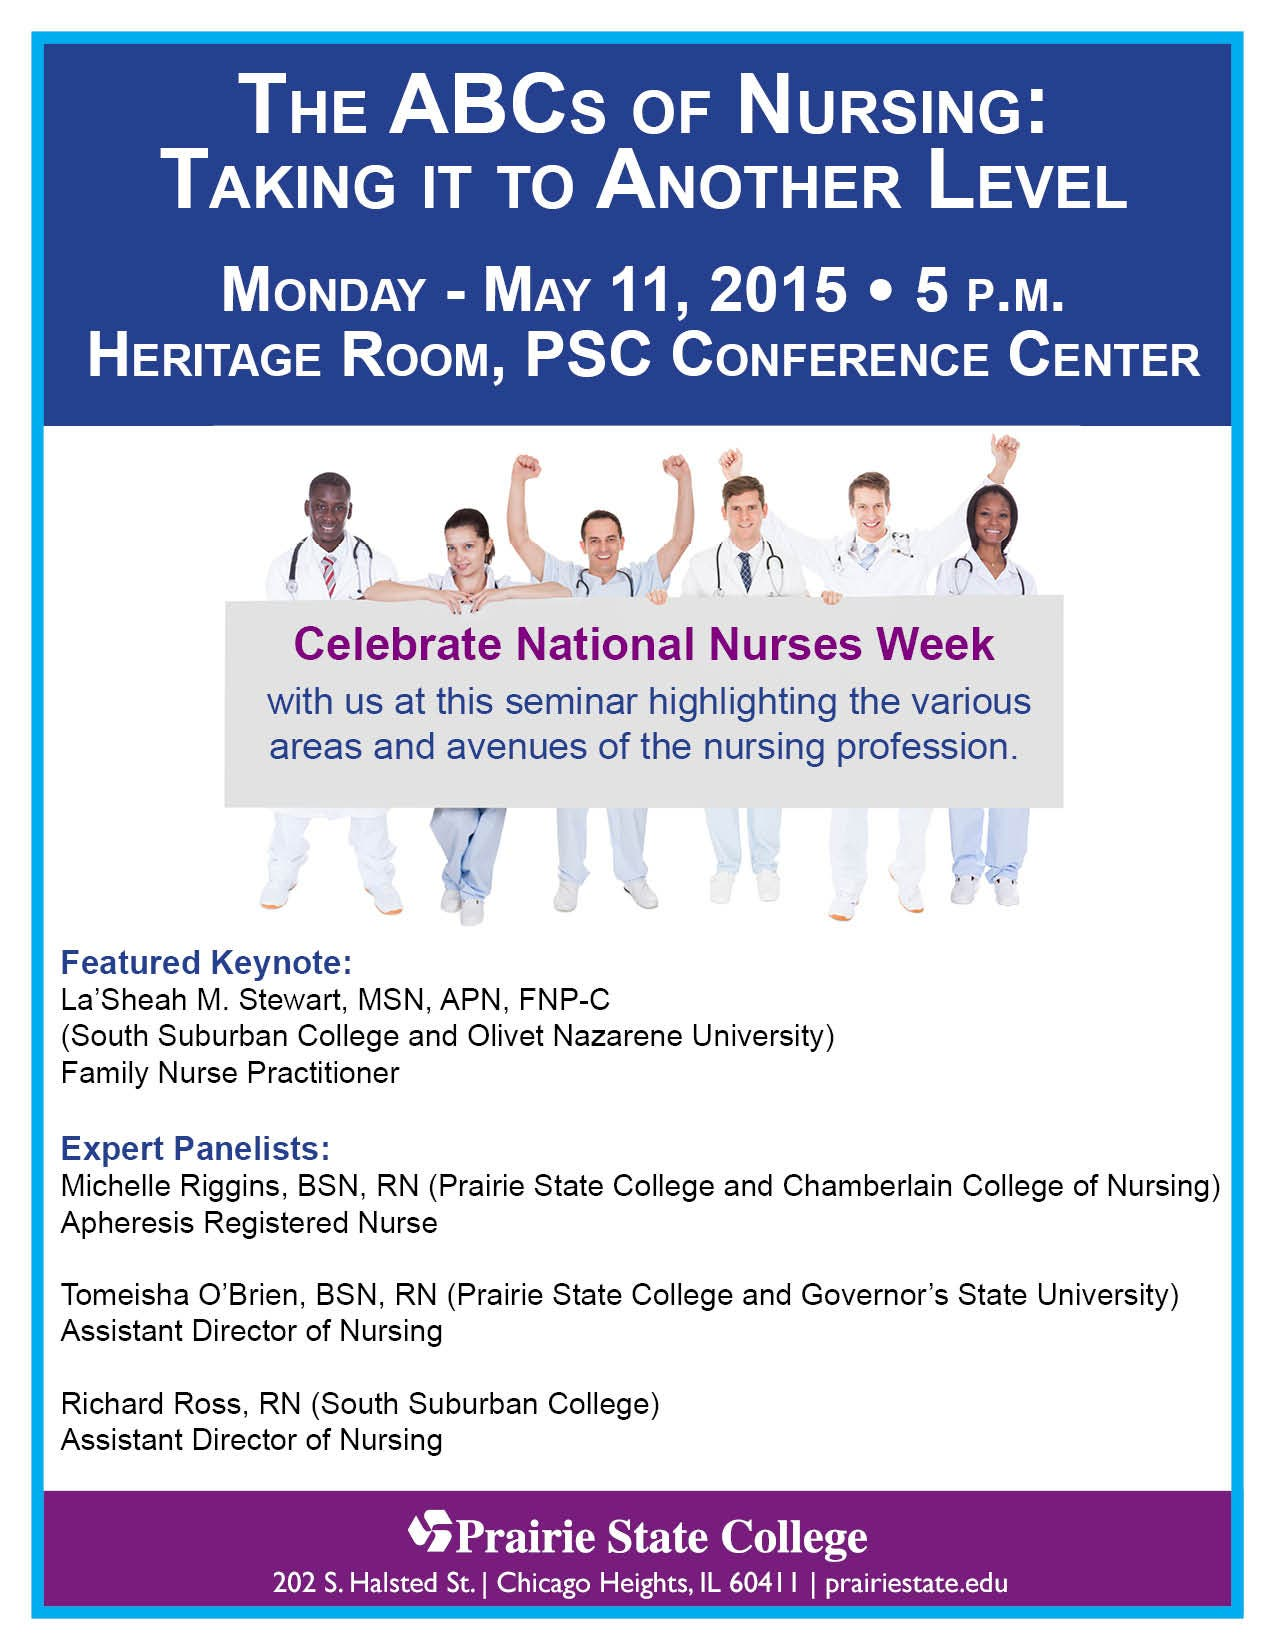 The ABCs of Nursing: Taking it to Another Level - May 11 at